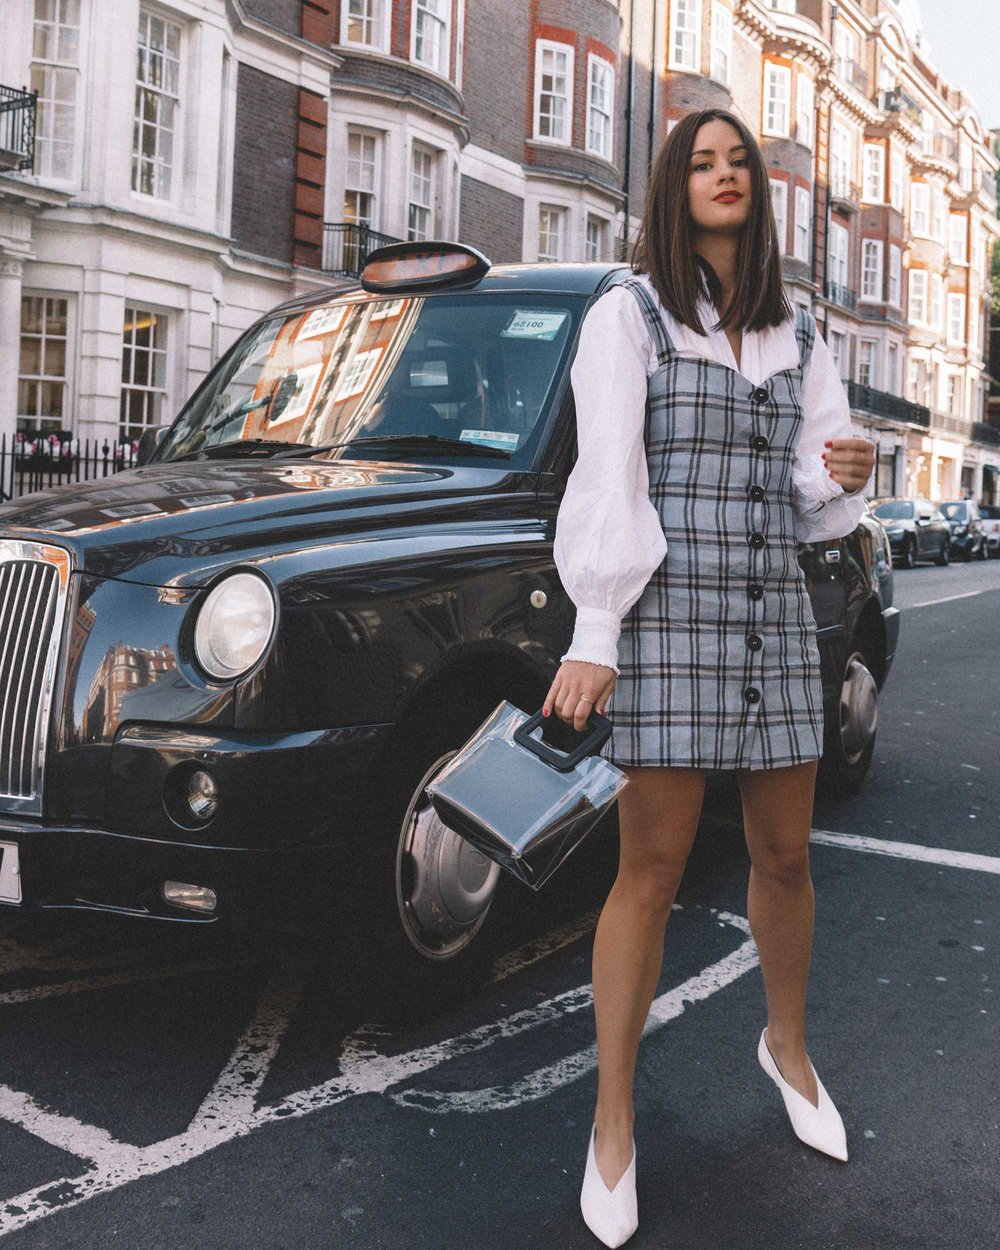 Reformation plaid button front mini dress, Joie Rickelle white blouse Top, London Fashion Week Outfit, Fall Plaid Dress, Fall Plaid Outfit1.jpg